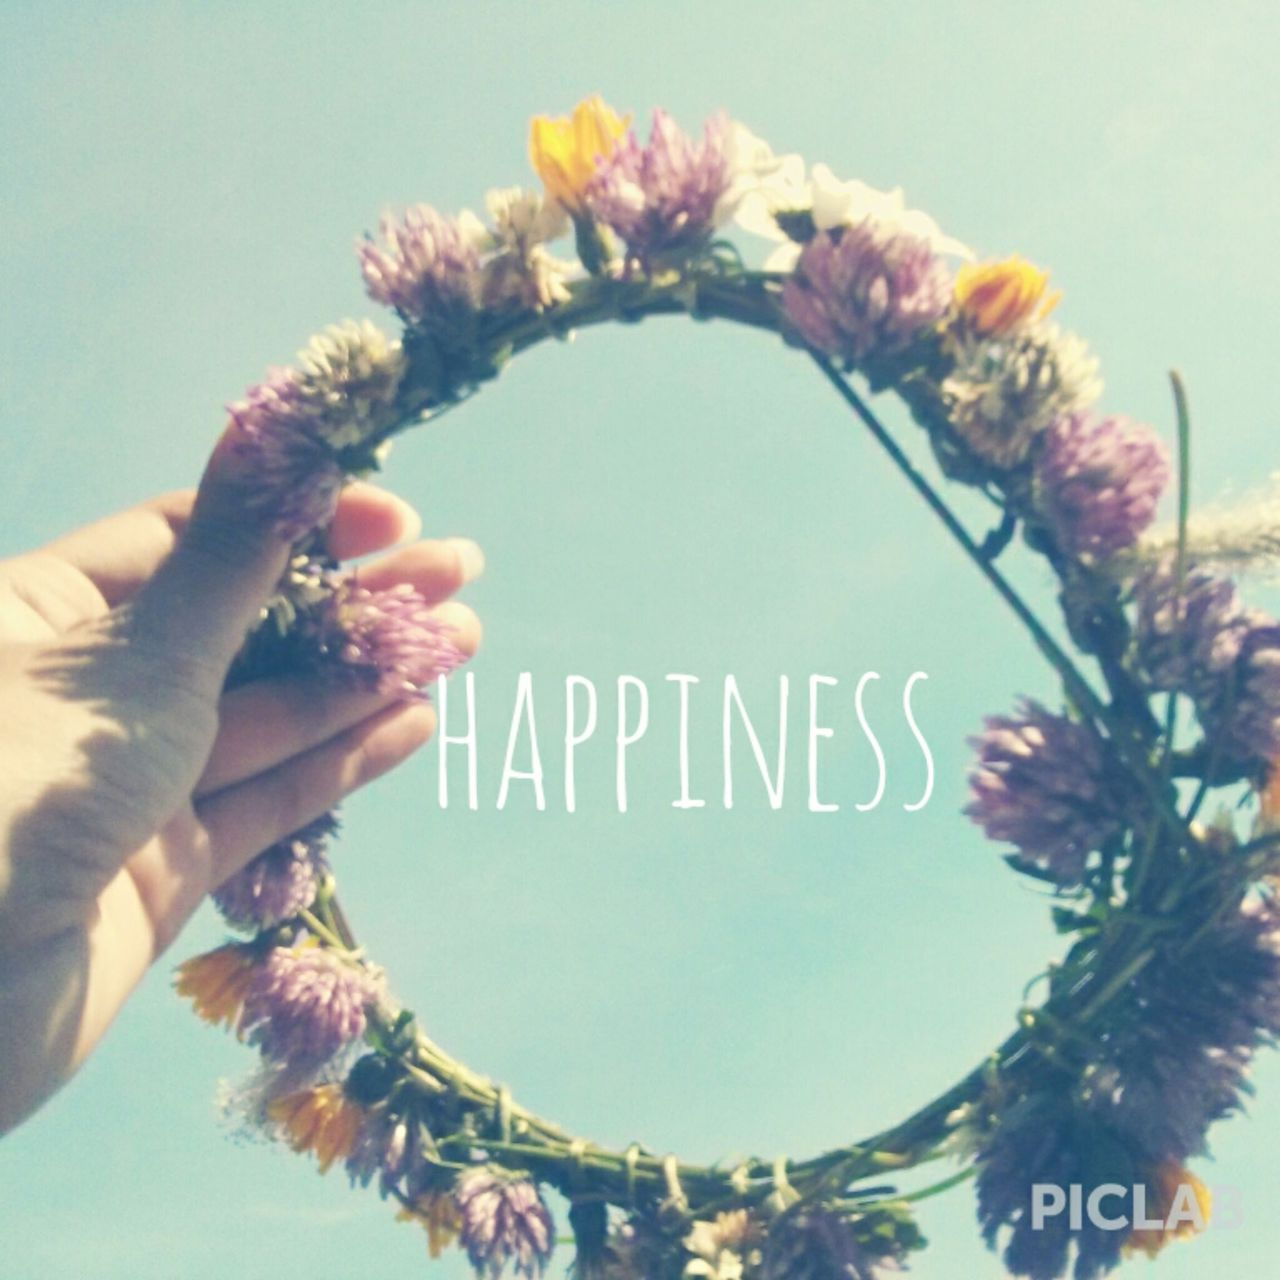 flowers and happiness image